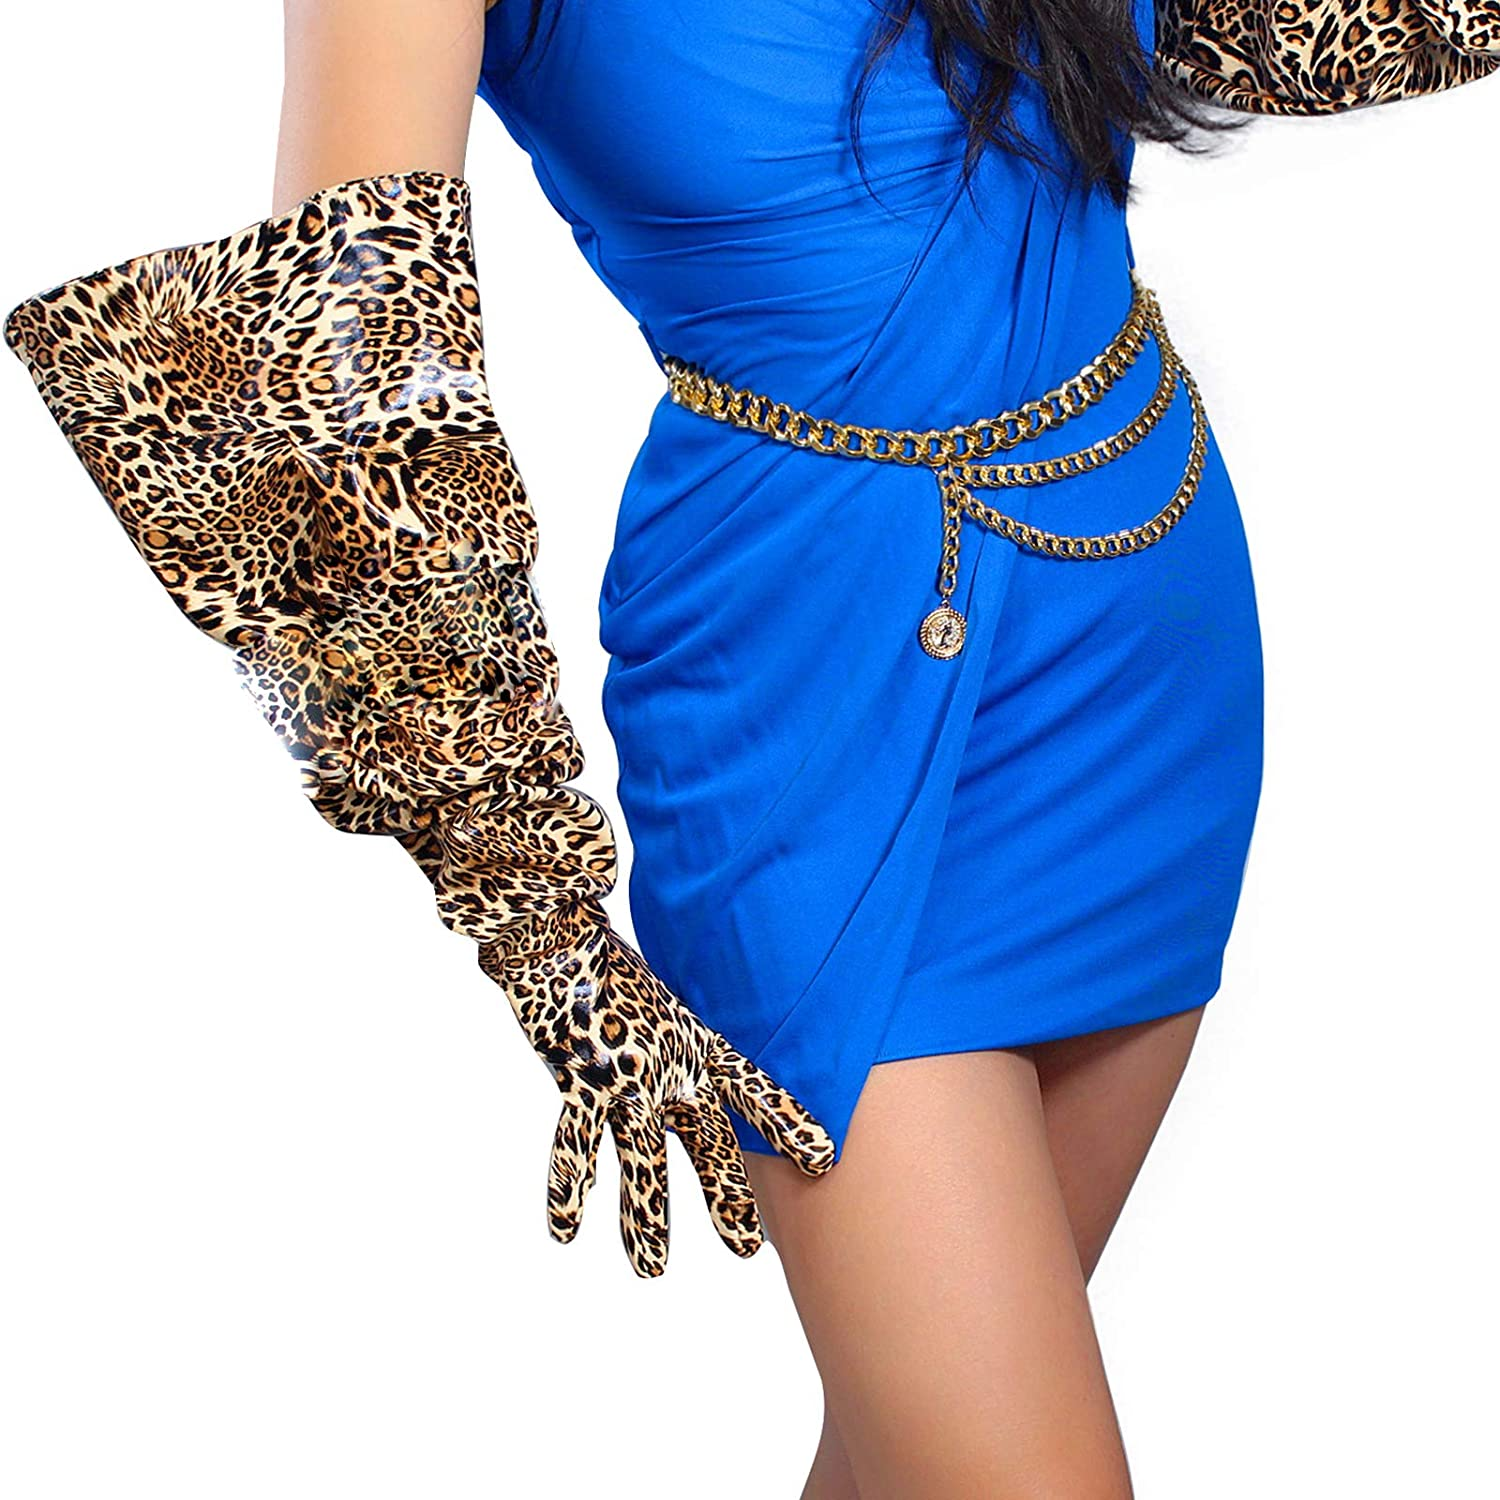 DooWay Super Long Leather Gloves Unisex Shiny Look Wide Opening Large Puff Sleeves Costumes Opera Party 28inches